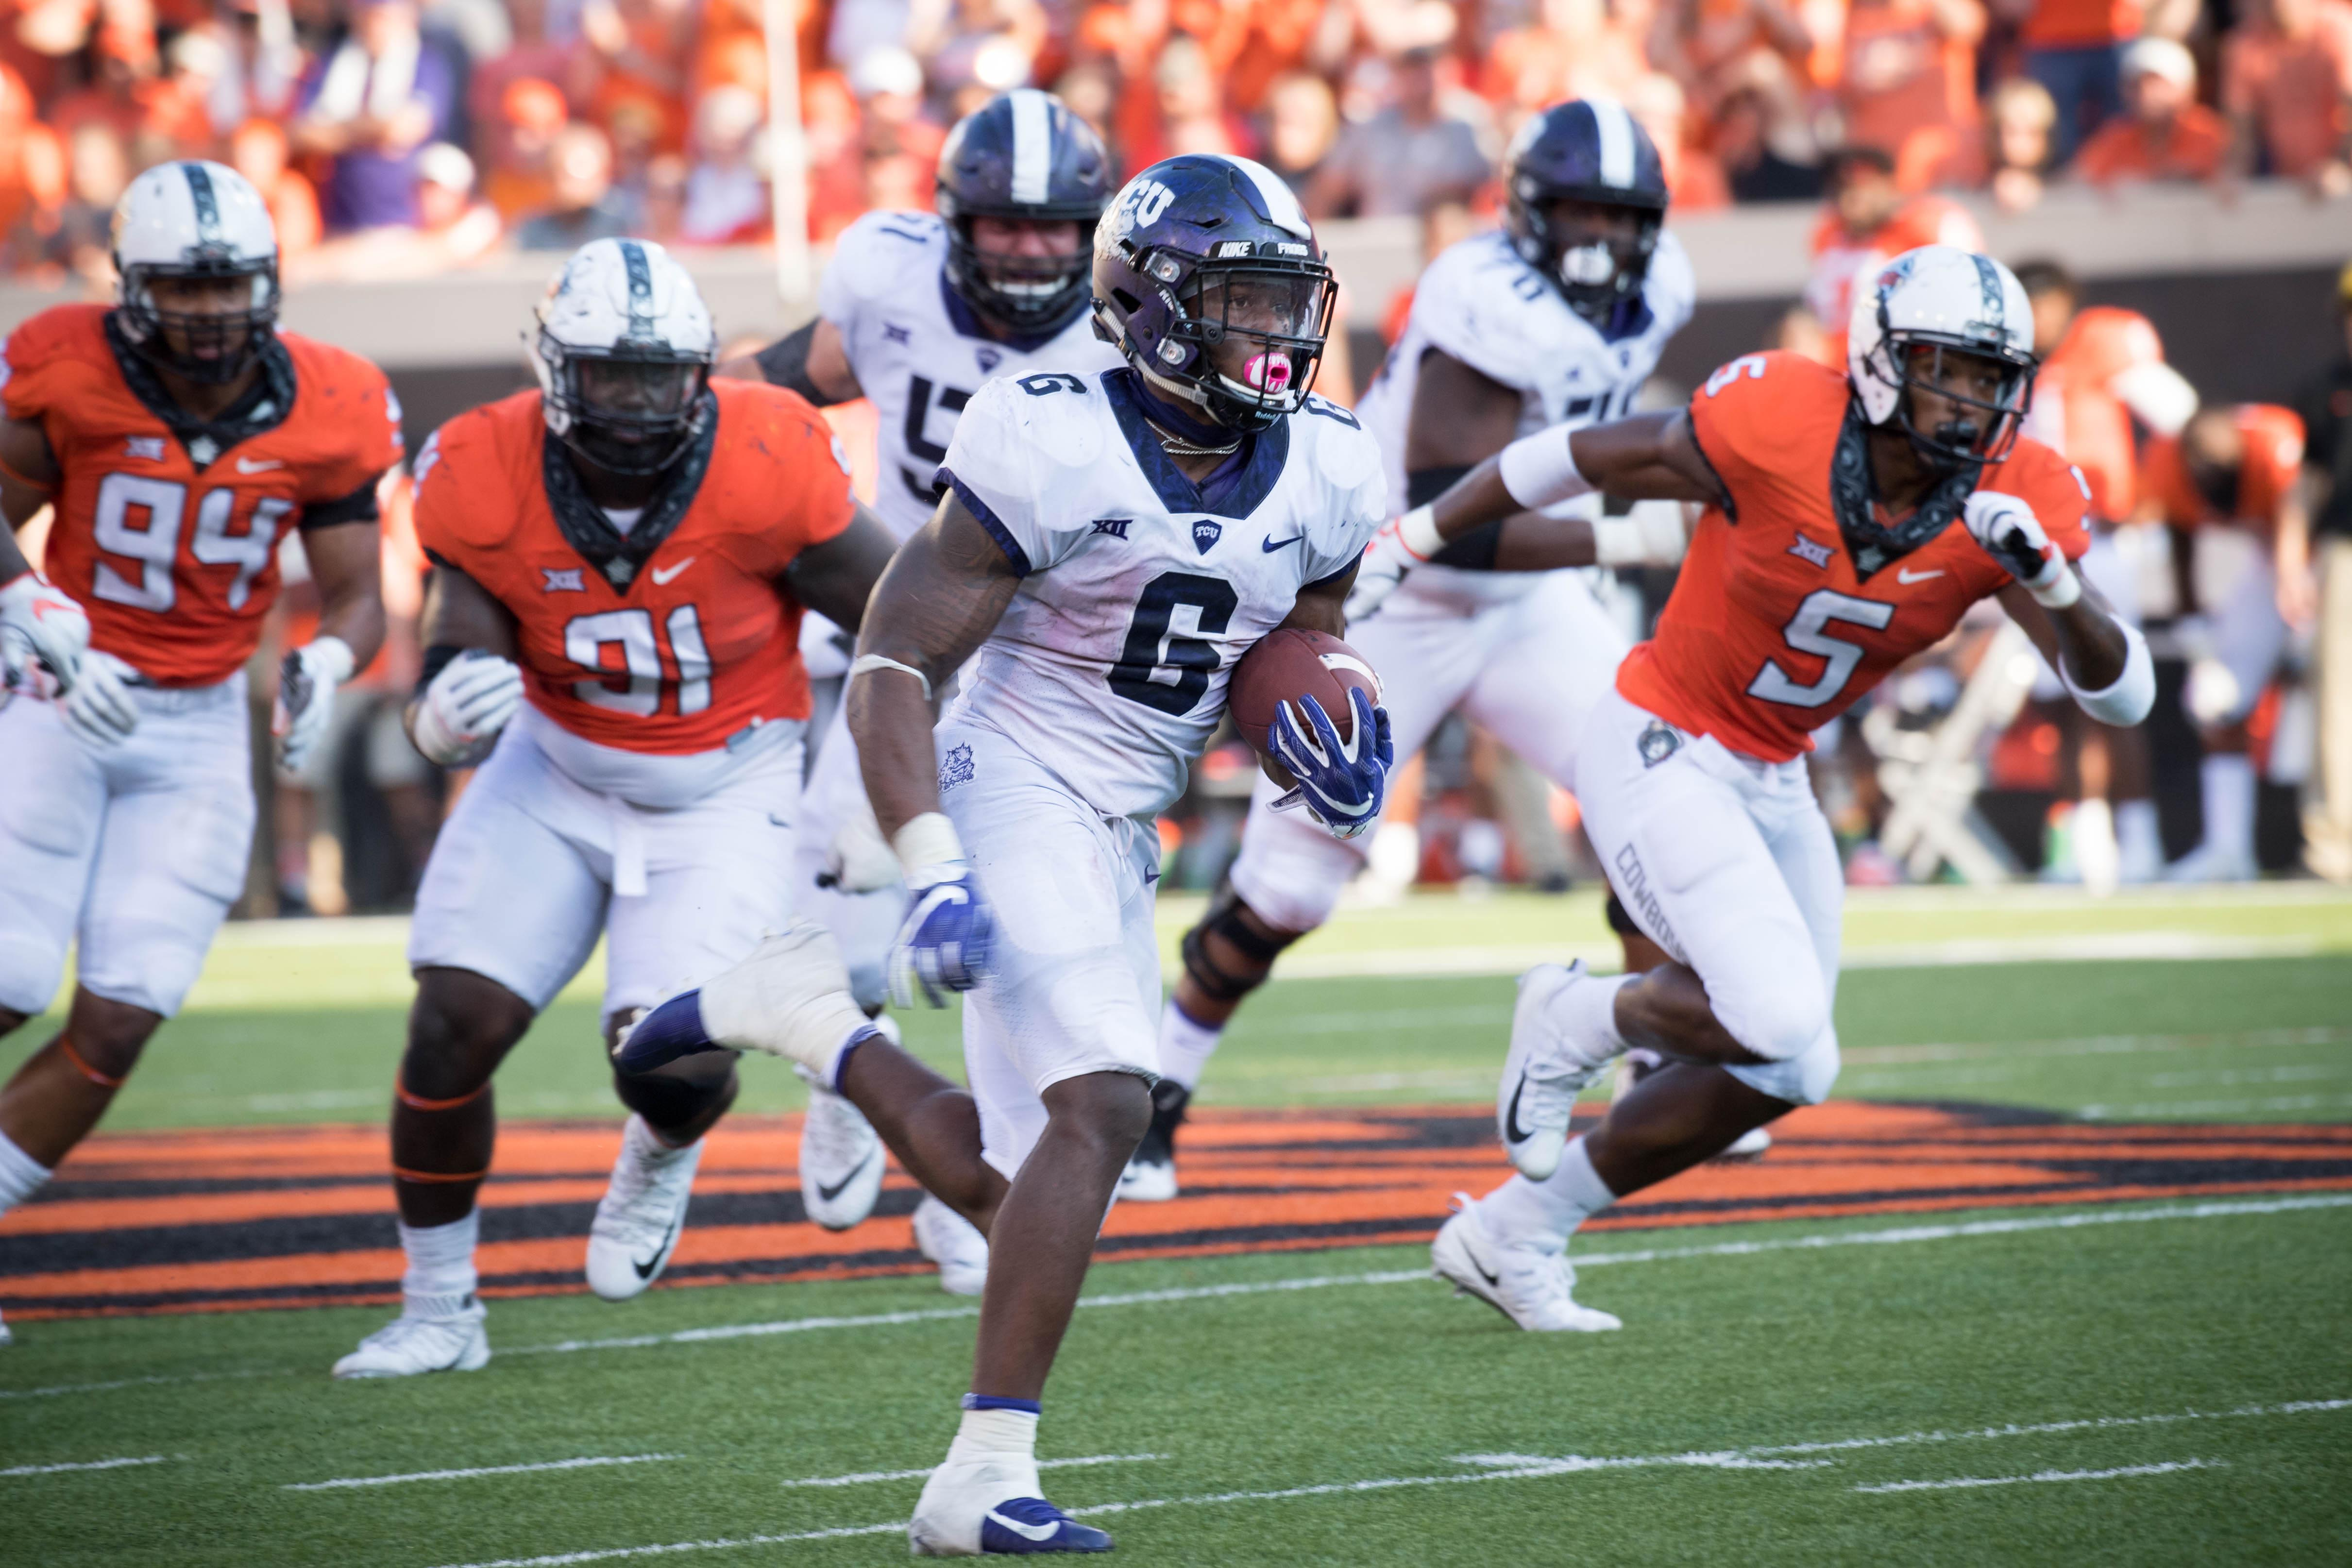 Sep 23, 2017; Stillwater, OK, USA; TCU Horned Frogs running back Darius Anderson (6) runs the ball for a touchdown during the second half at Boone Pickens Stadium. Mandatory Credit: Rob Ferguson-USA TODAY Sports